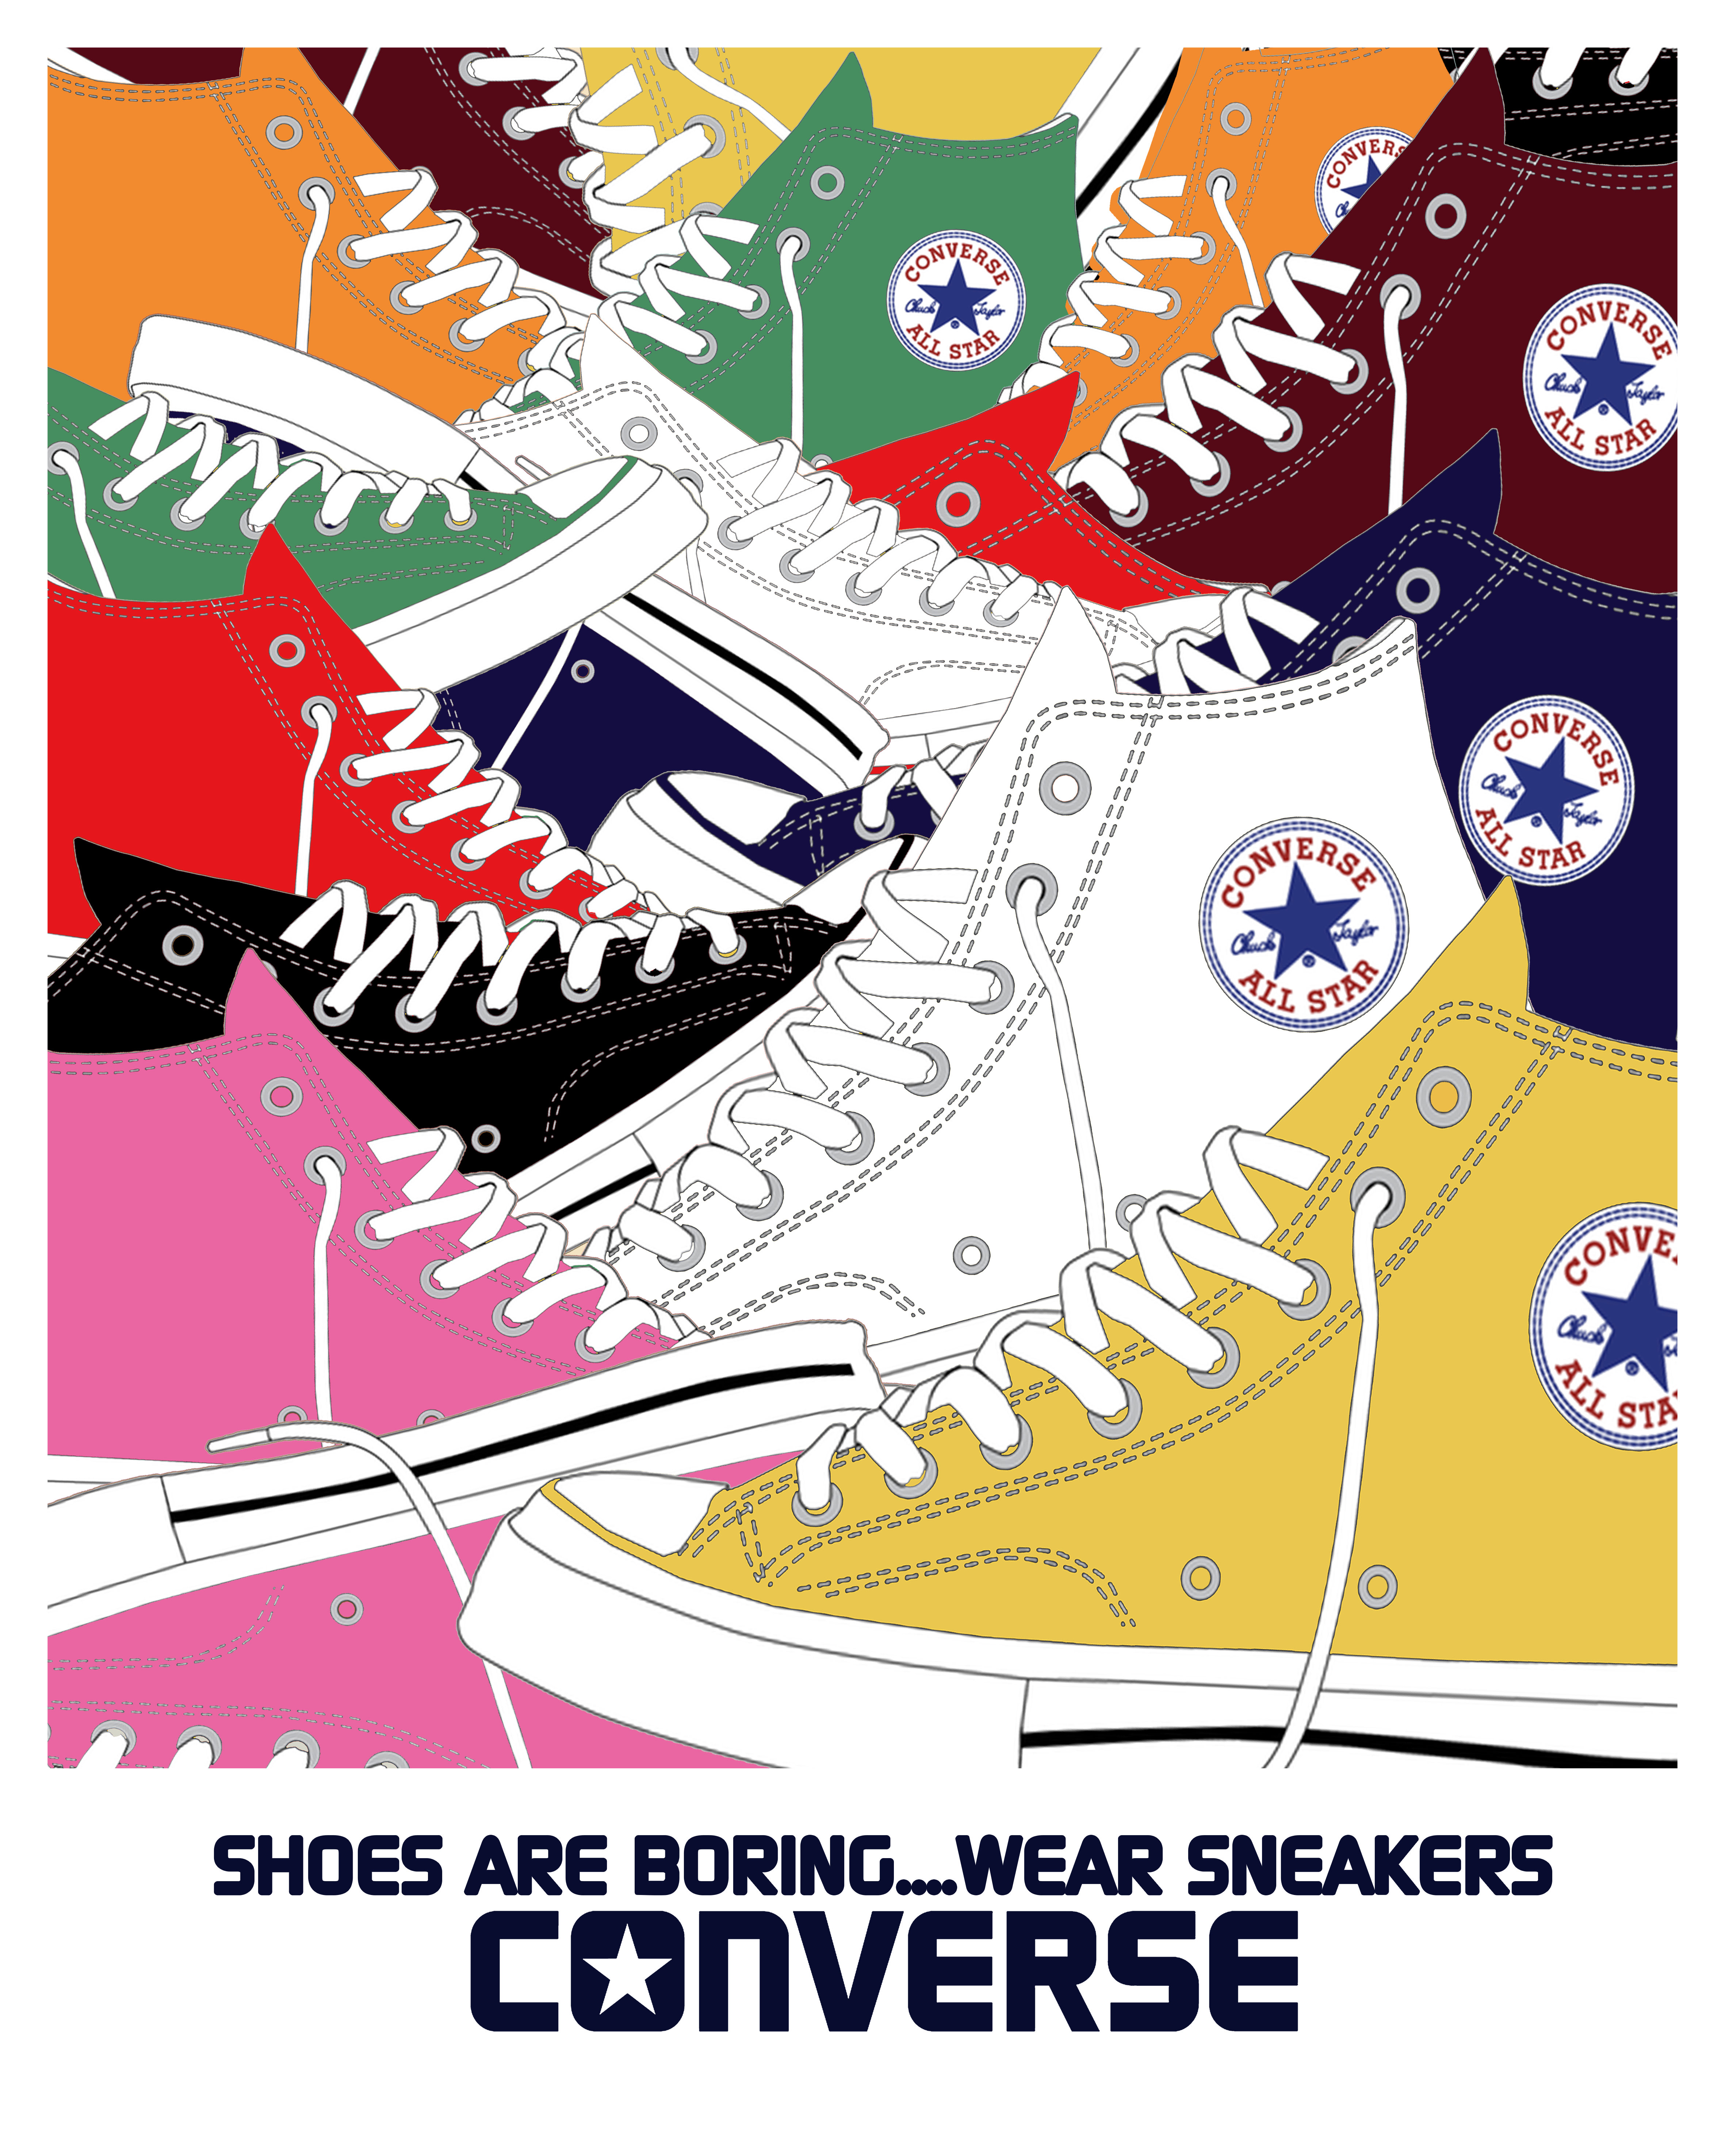 Converse All Stars 40x50cm Poster print for the iconic